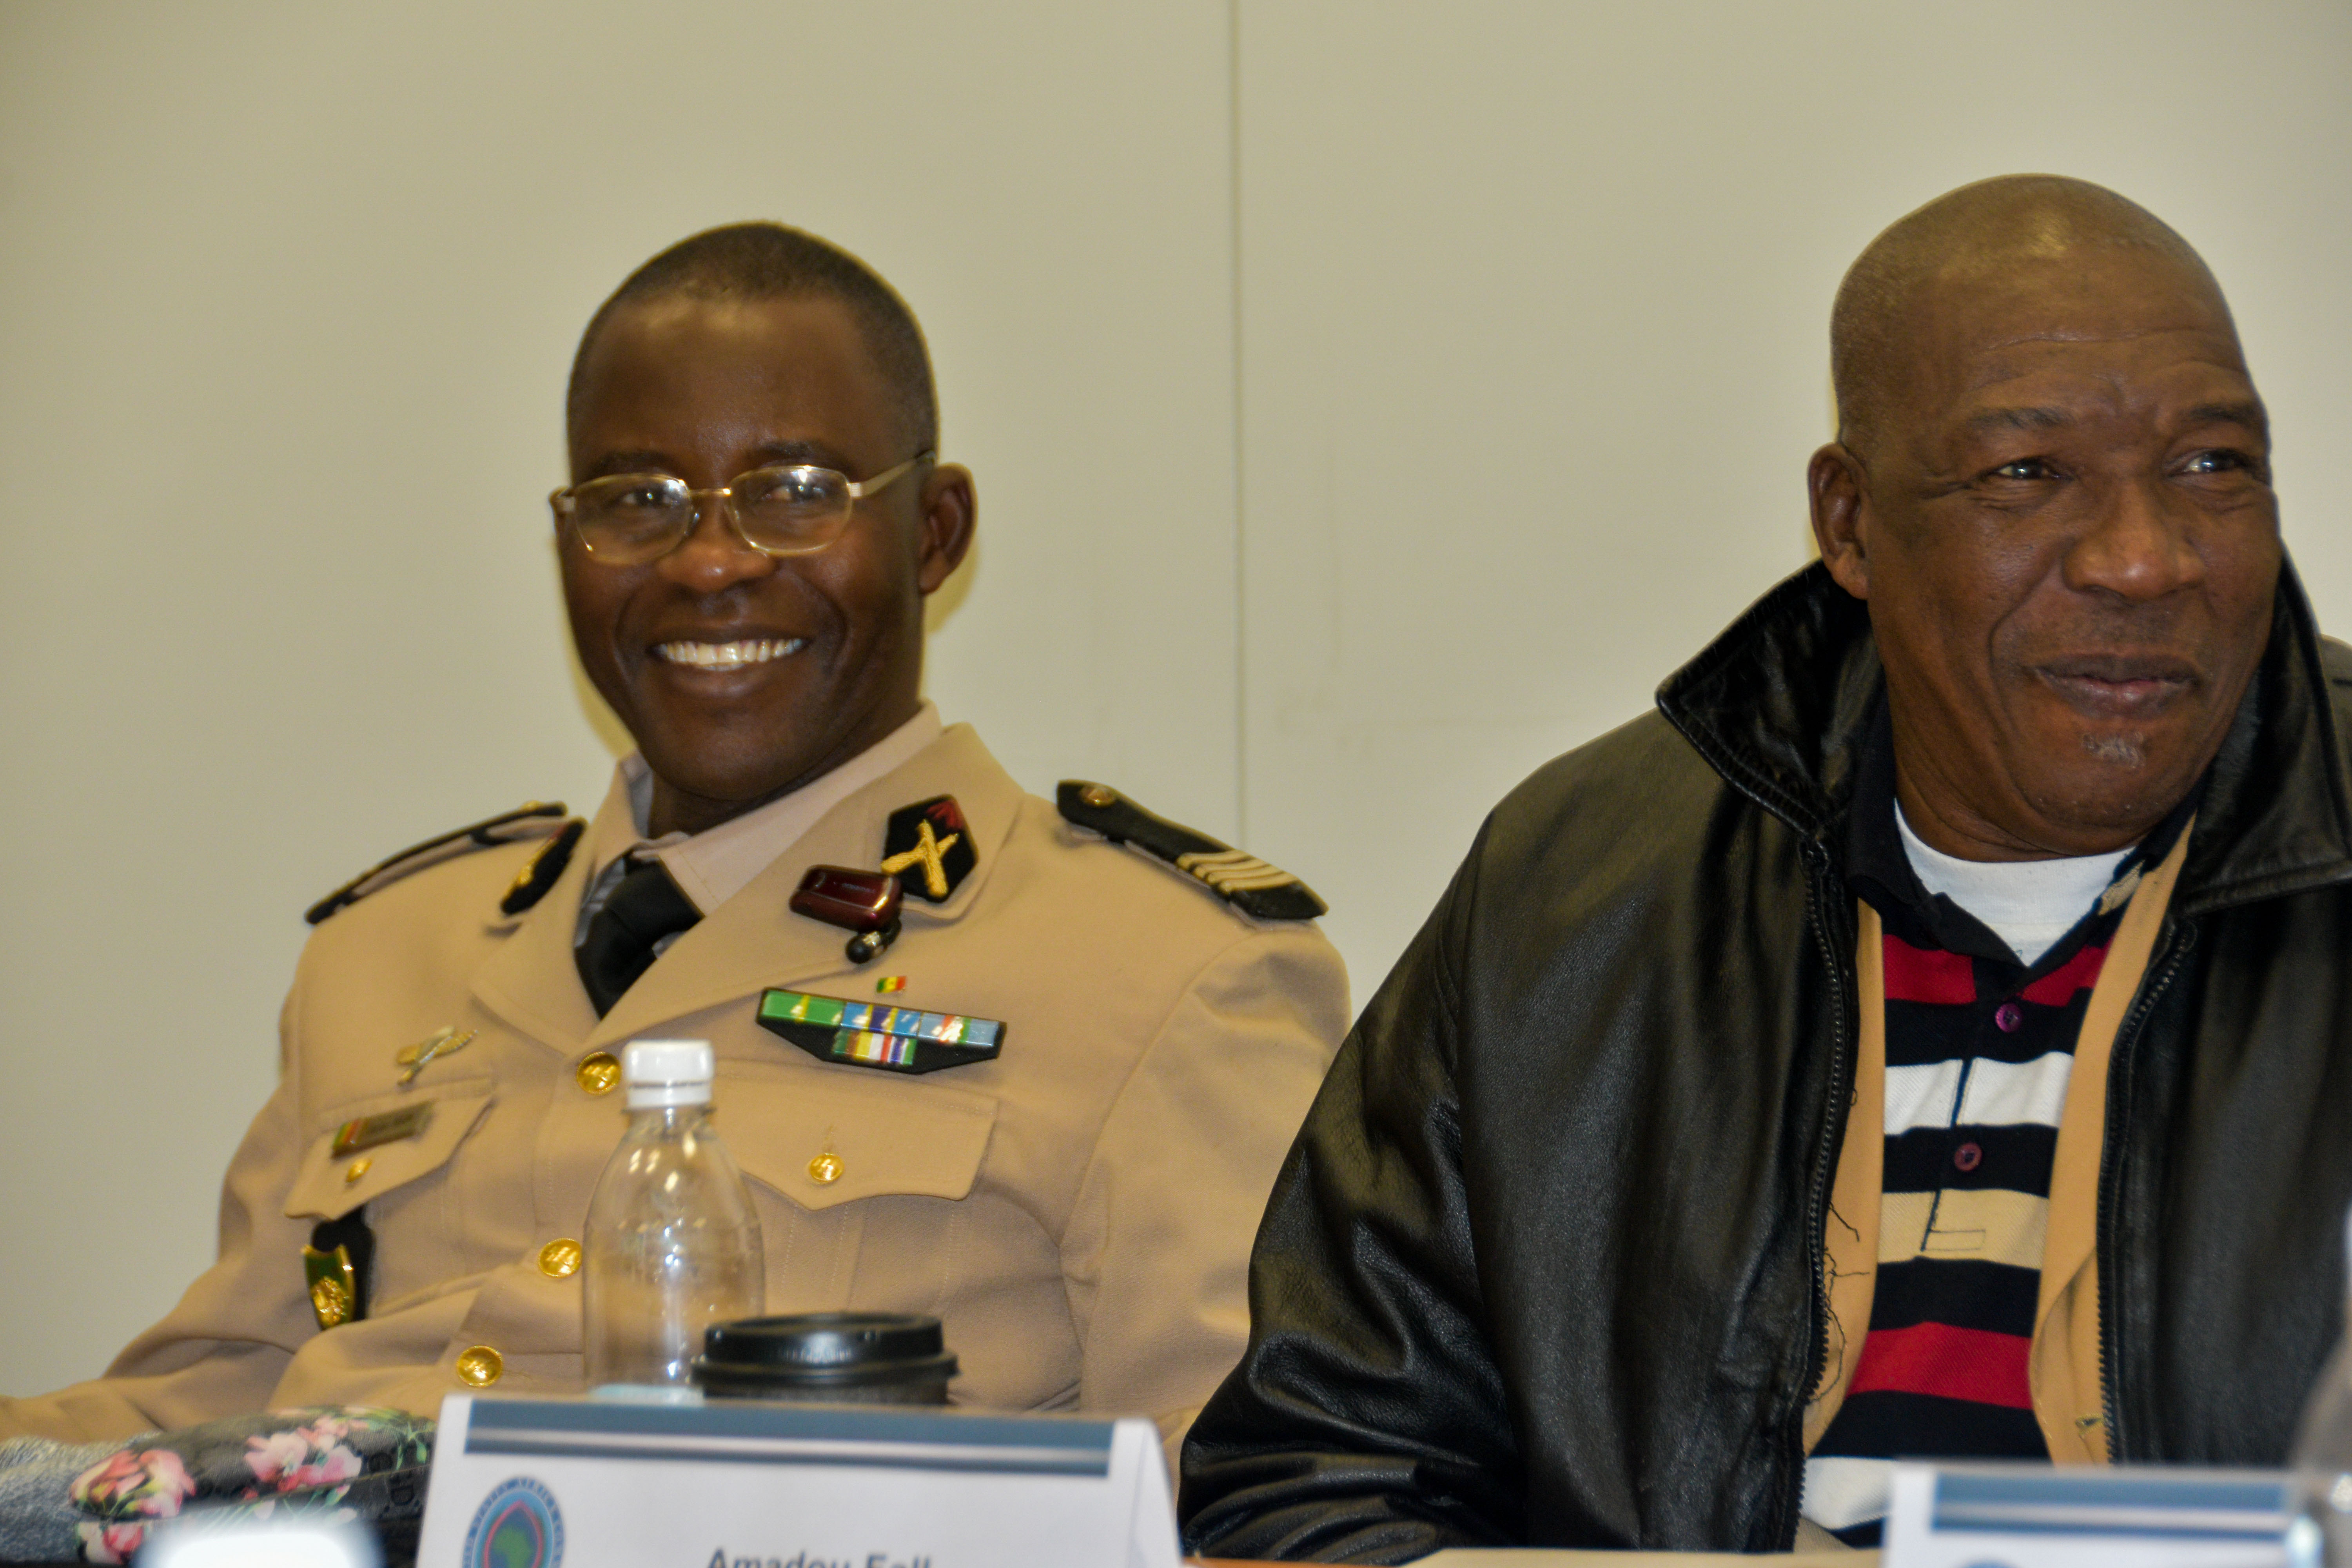 Commandant Saliou Ngom, Head of Media Strategies for the Senegal Armed Forces, and Amadou Fall, Publication Director of La Gazette, enjoy a light moment during a break.  Journalists from various news organizations in Senegal and Guinea Bissau visited U.S. Africa Command, Stuttgart, Germany, Dec. 11-14, 2017. AFRICOM staff provided briefs throughout the week which culminated in an interview of Lt. Gen. James C. Vechery, Deputy to the Commander for Military Operations, U.S. Africa Command.